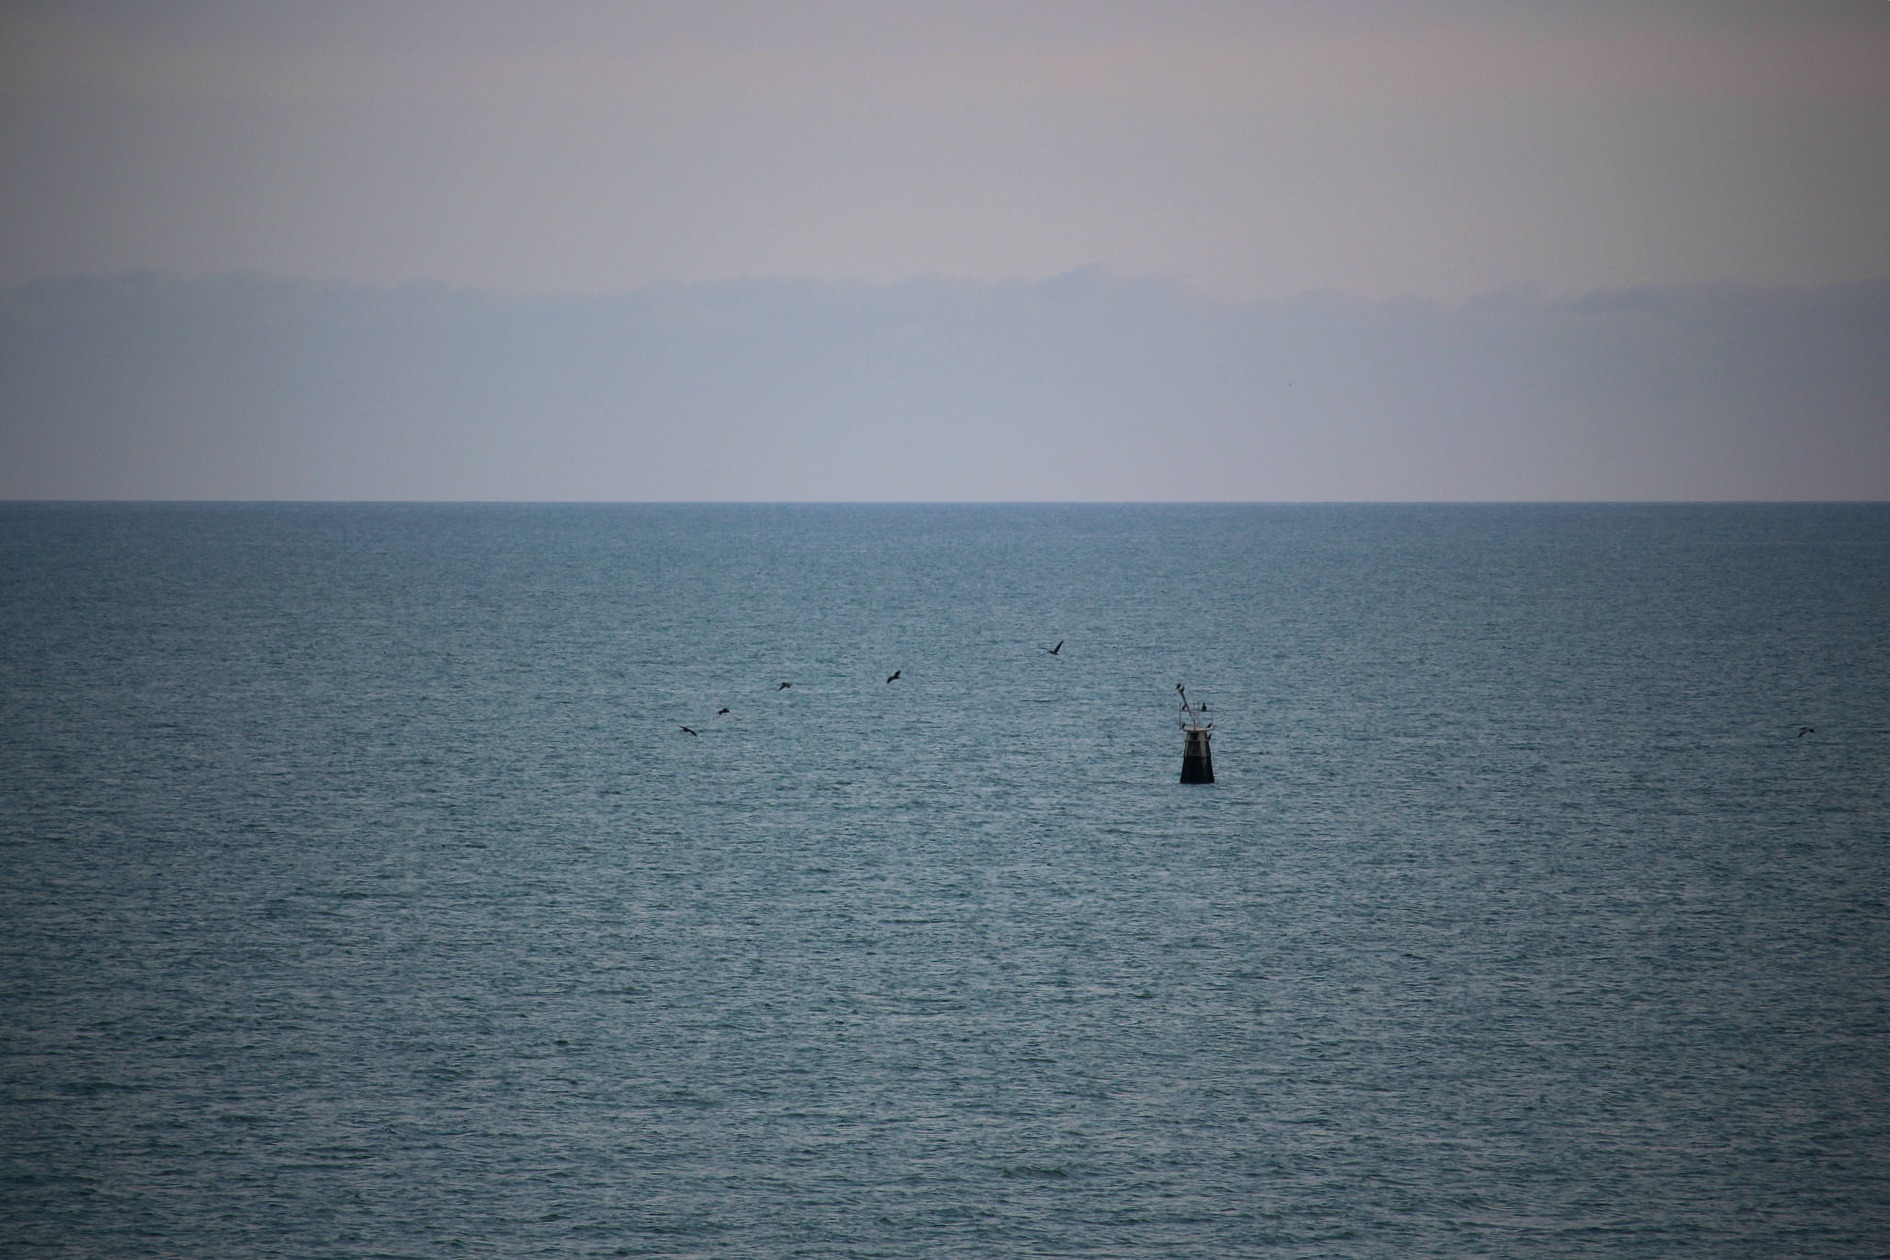 I looked out on our balcony one evening and saw these beautiful birds flying around a buoy.